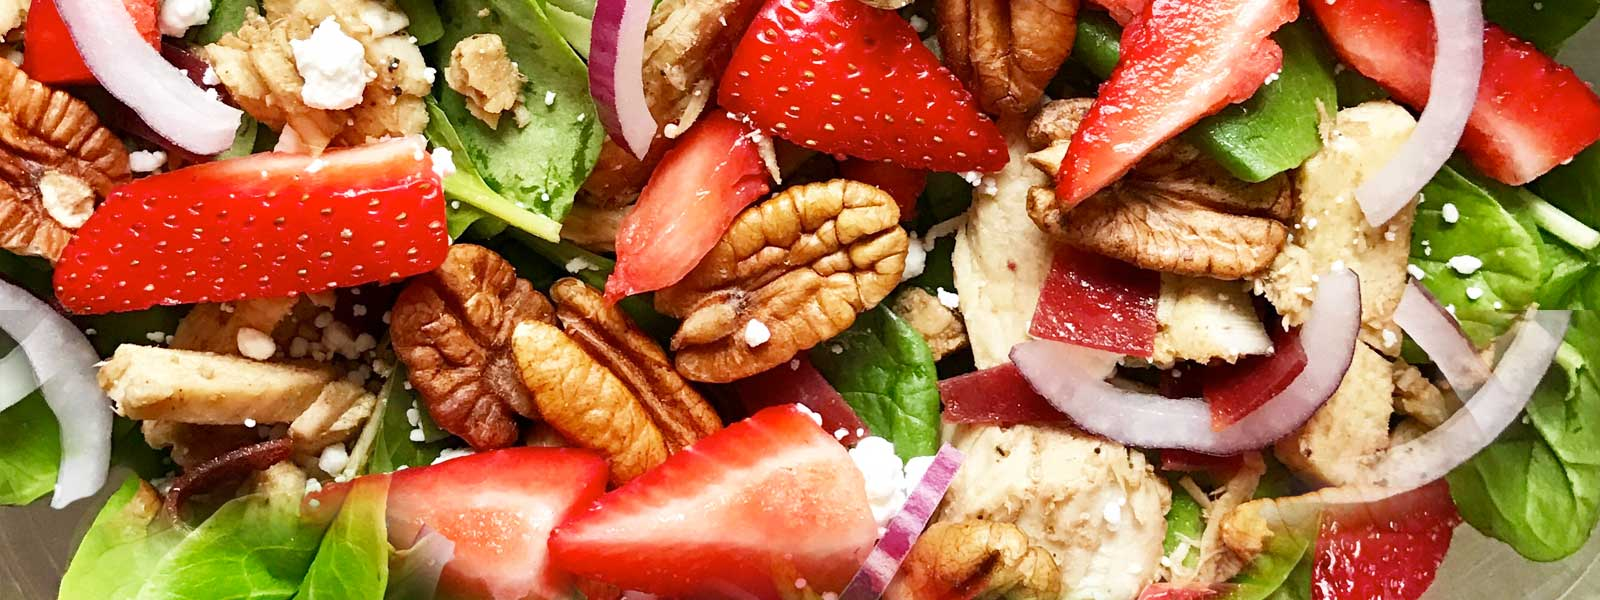 Image result for performance foods